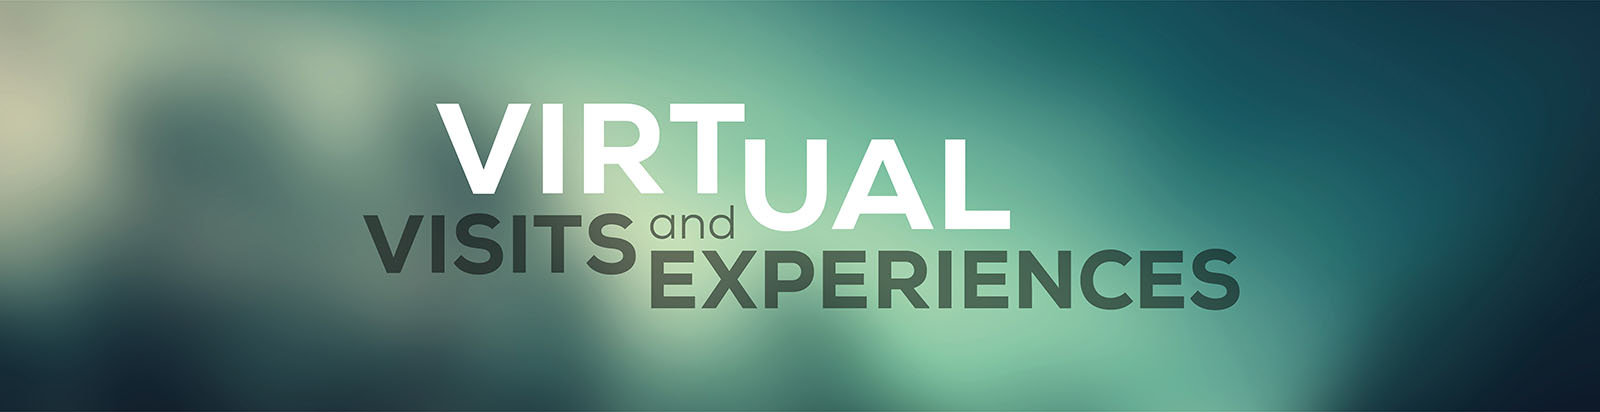 Virtual visits and experiences